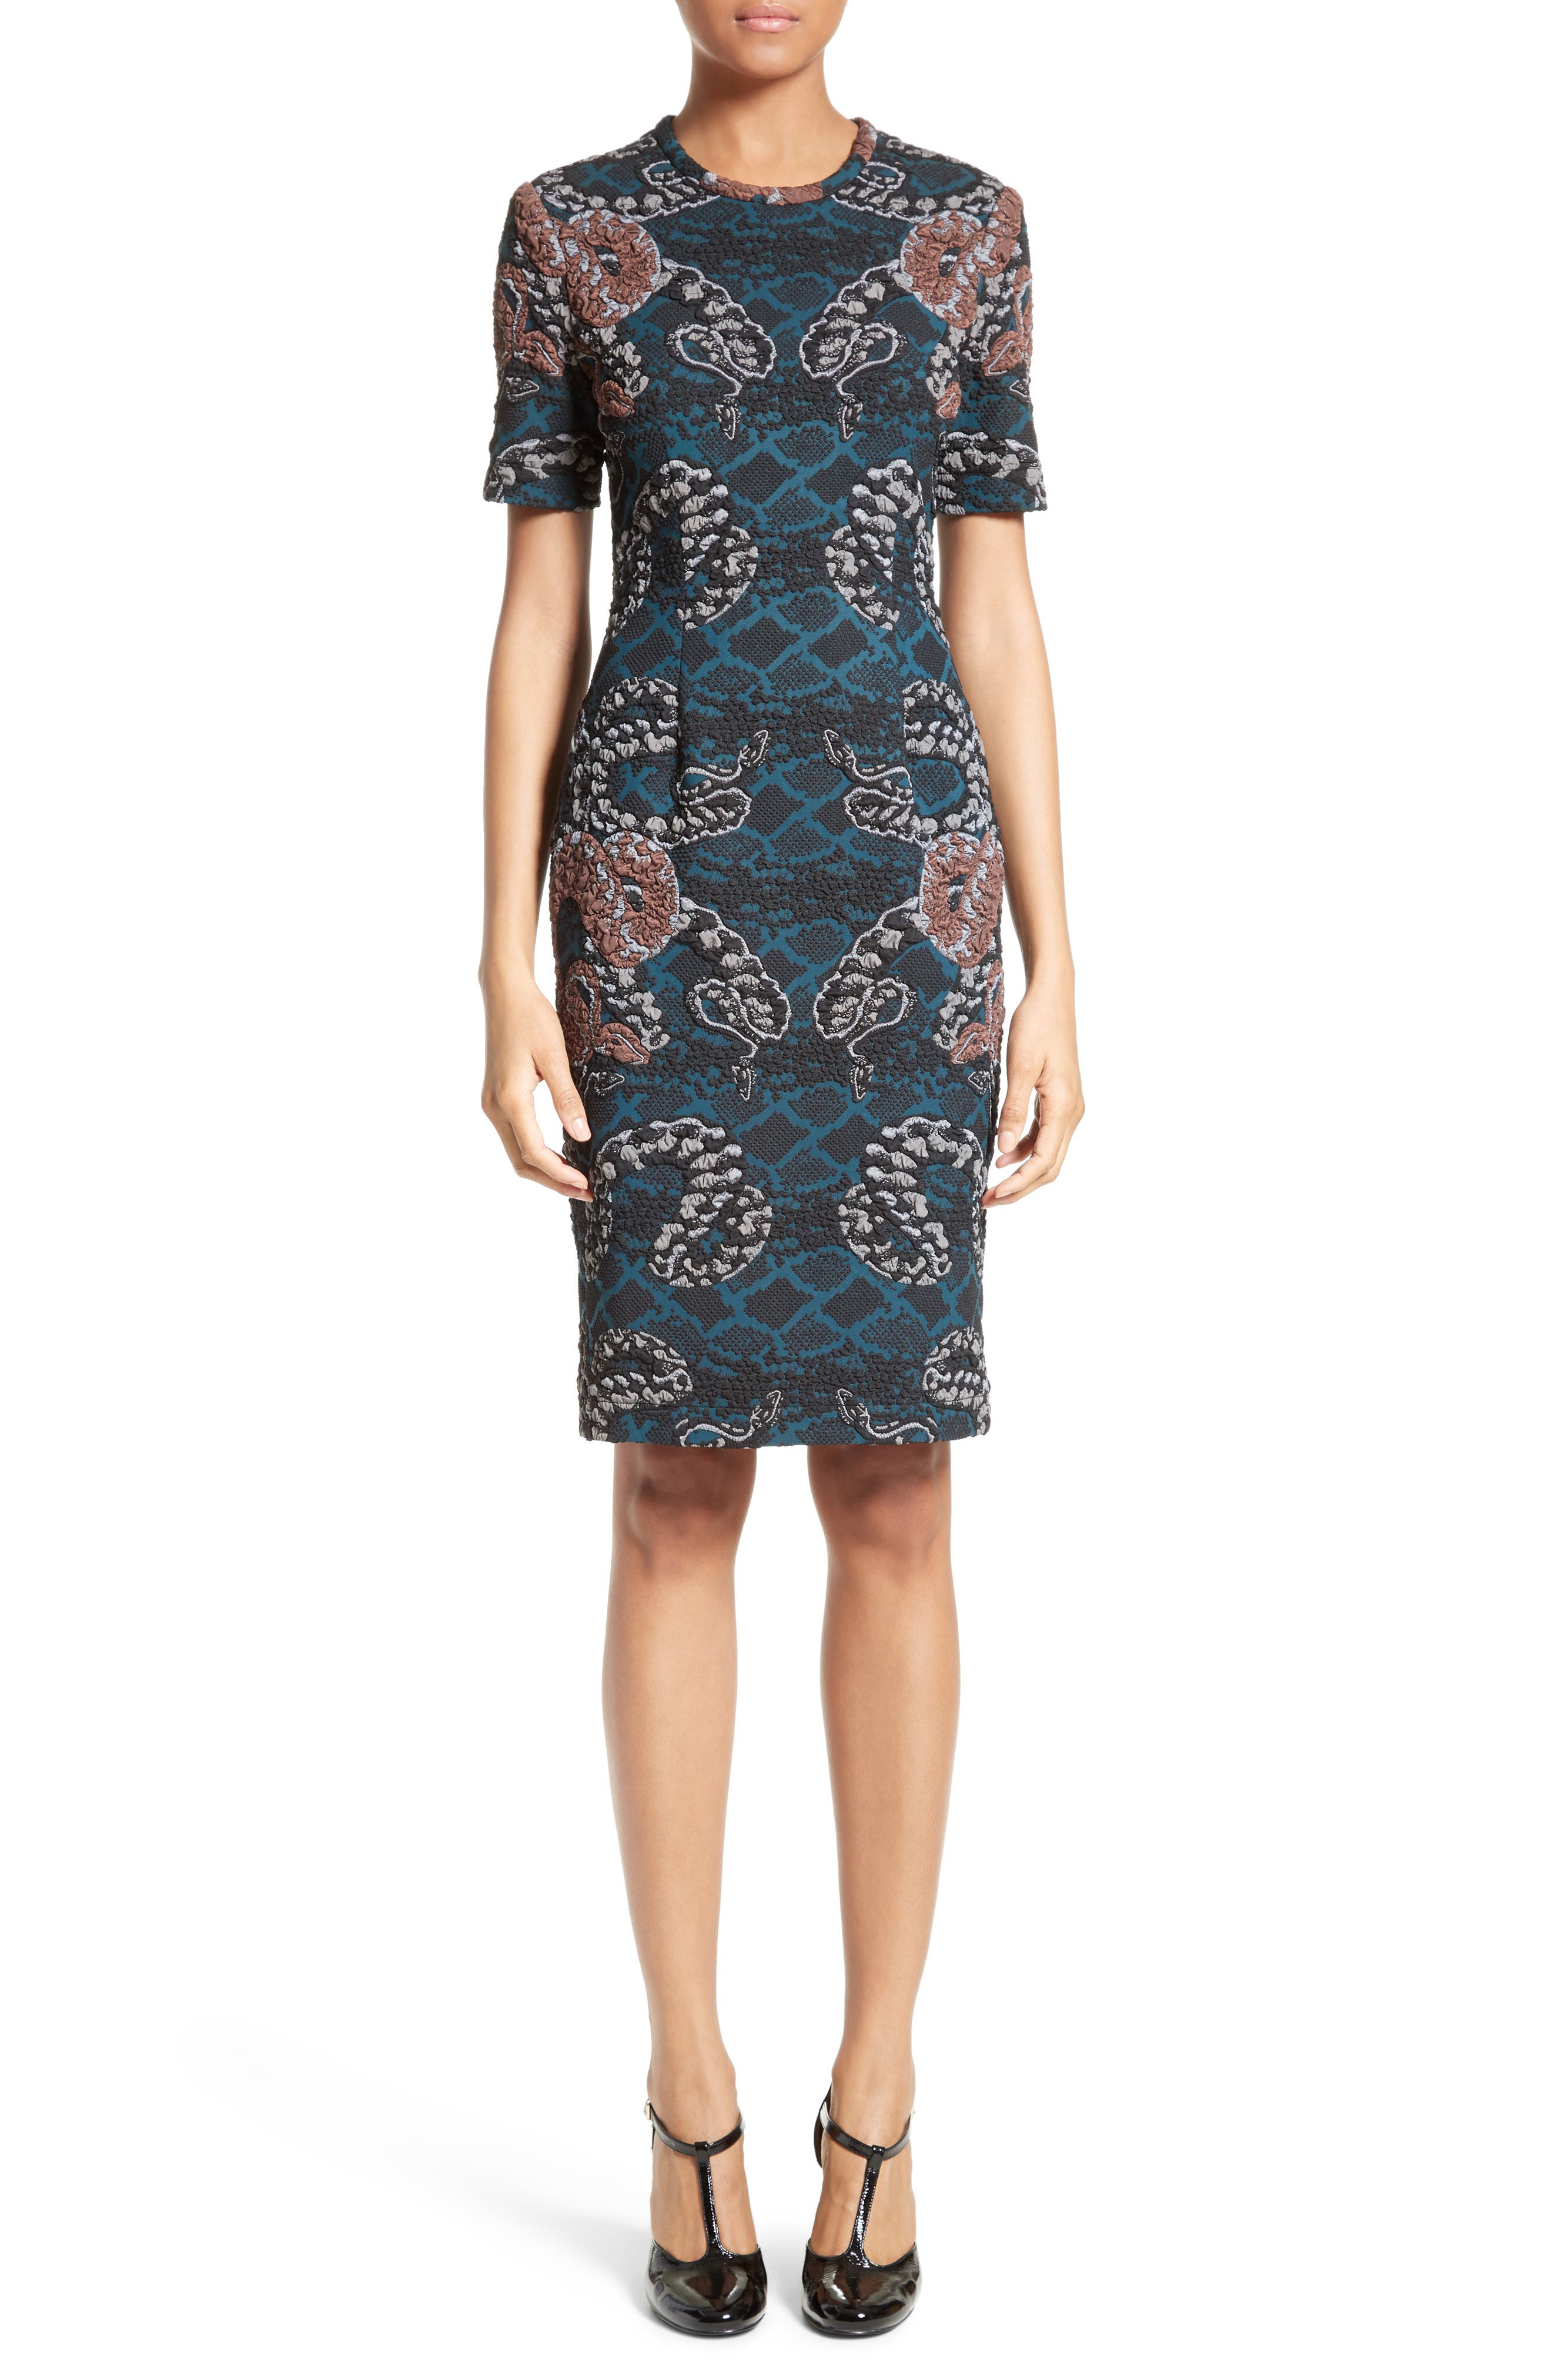 Yigal Azrouël Serpent Jacquard Dress